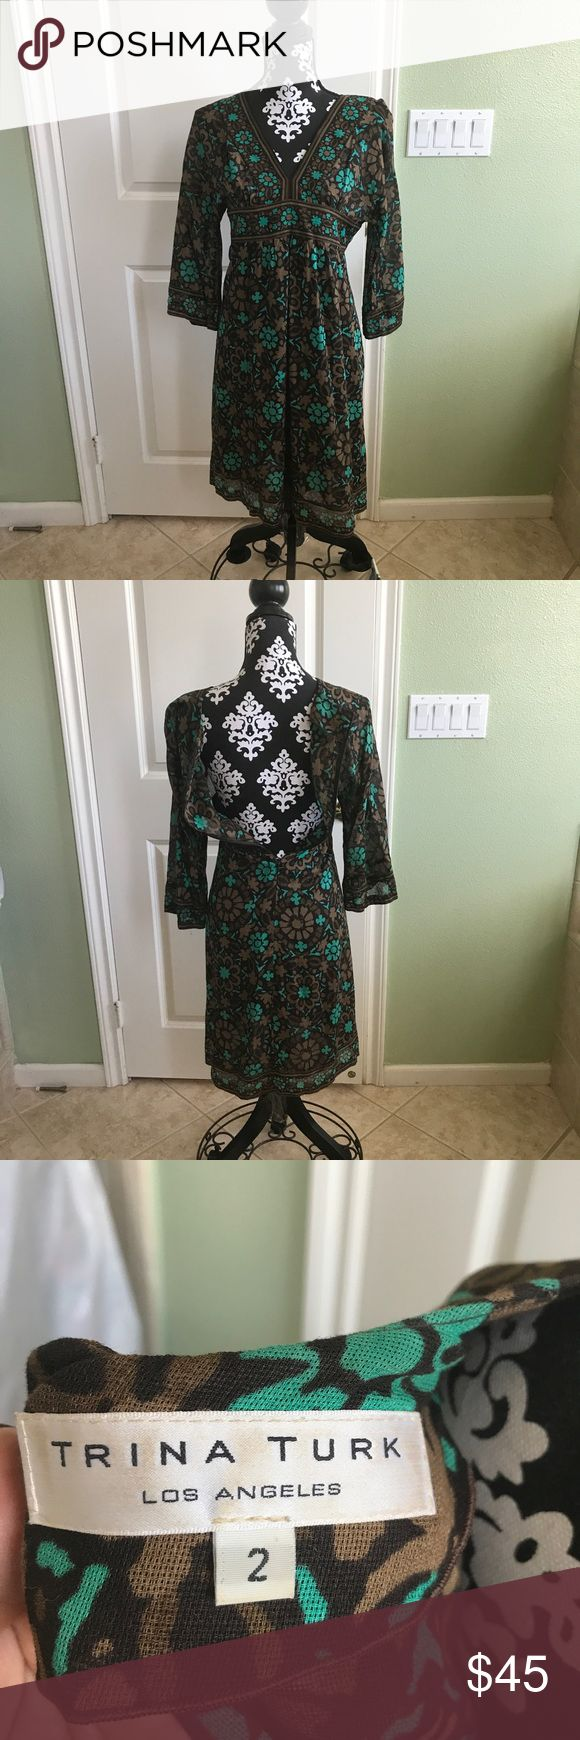 Trina Turk Long sleeve Floral dress In great pre loved condition no rips stains or tears great for work or a night out. Has a zippered back Trina Turk Dresses Midi